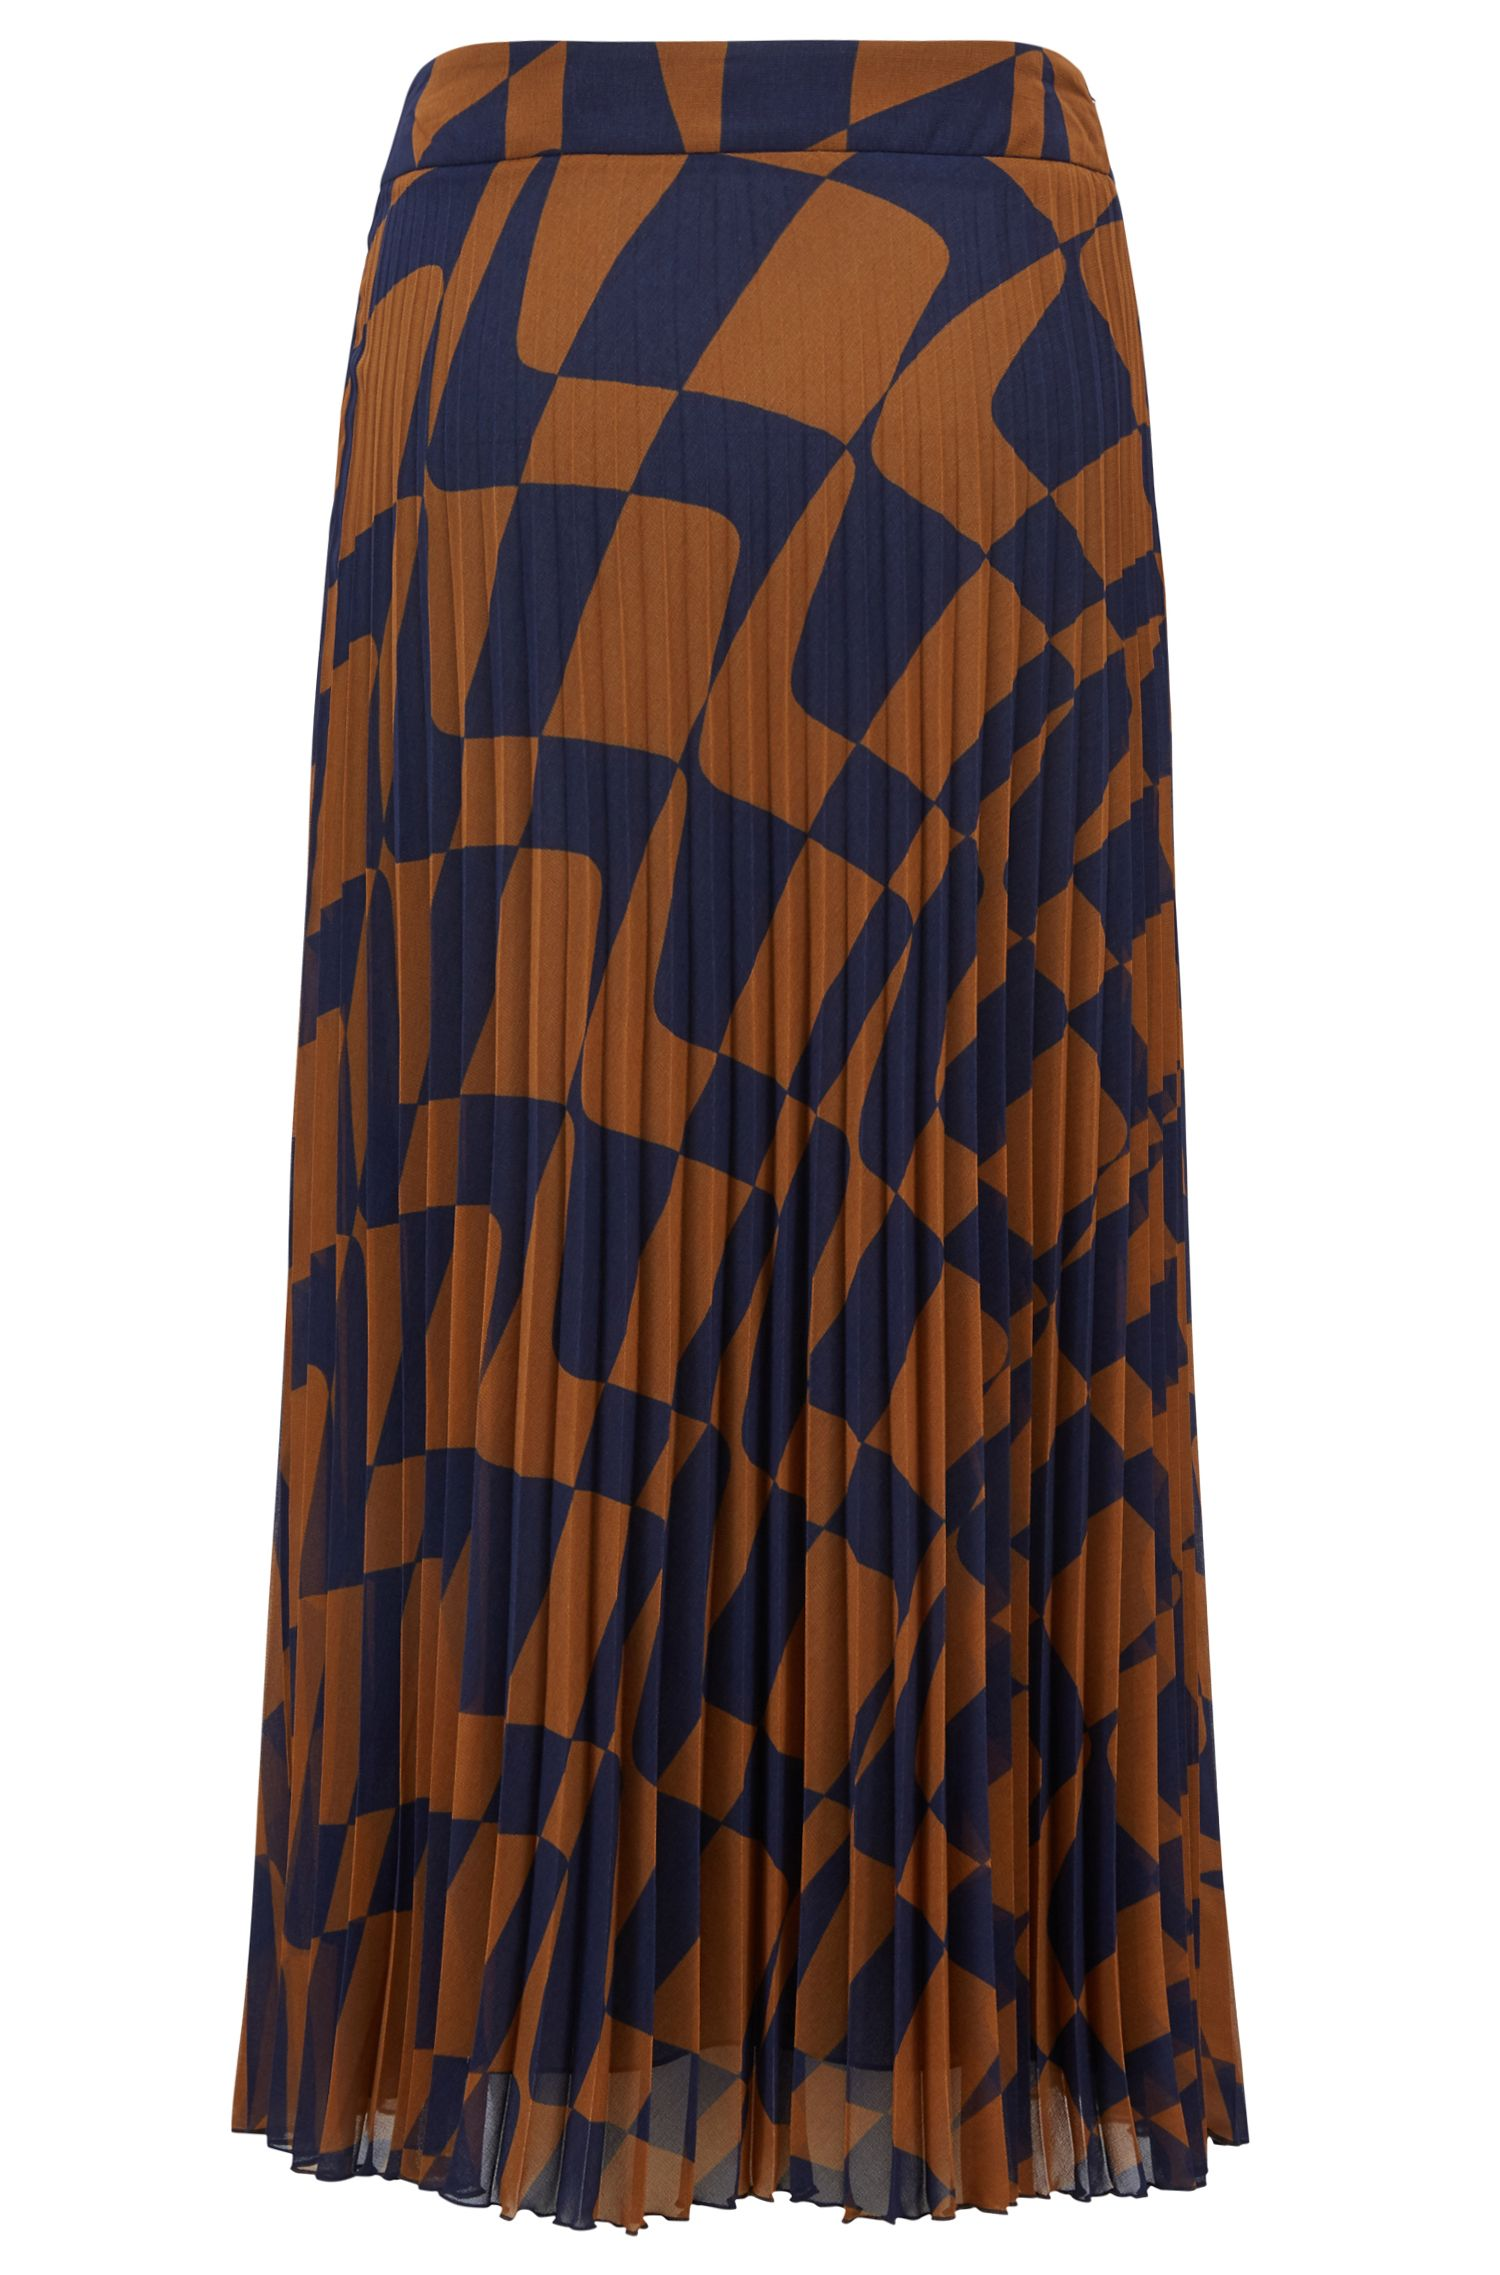 A-line skirt in Italian plissé with graphic wave print, Patterned